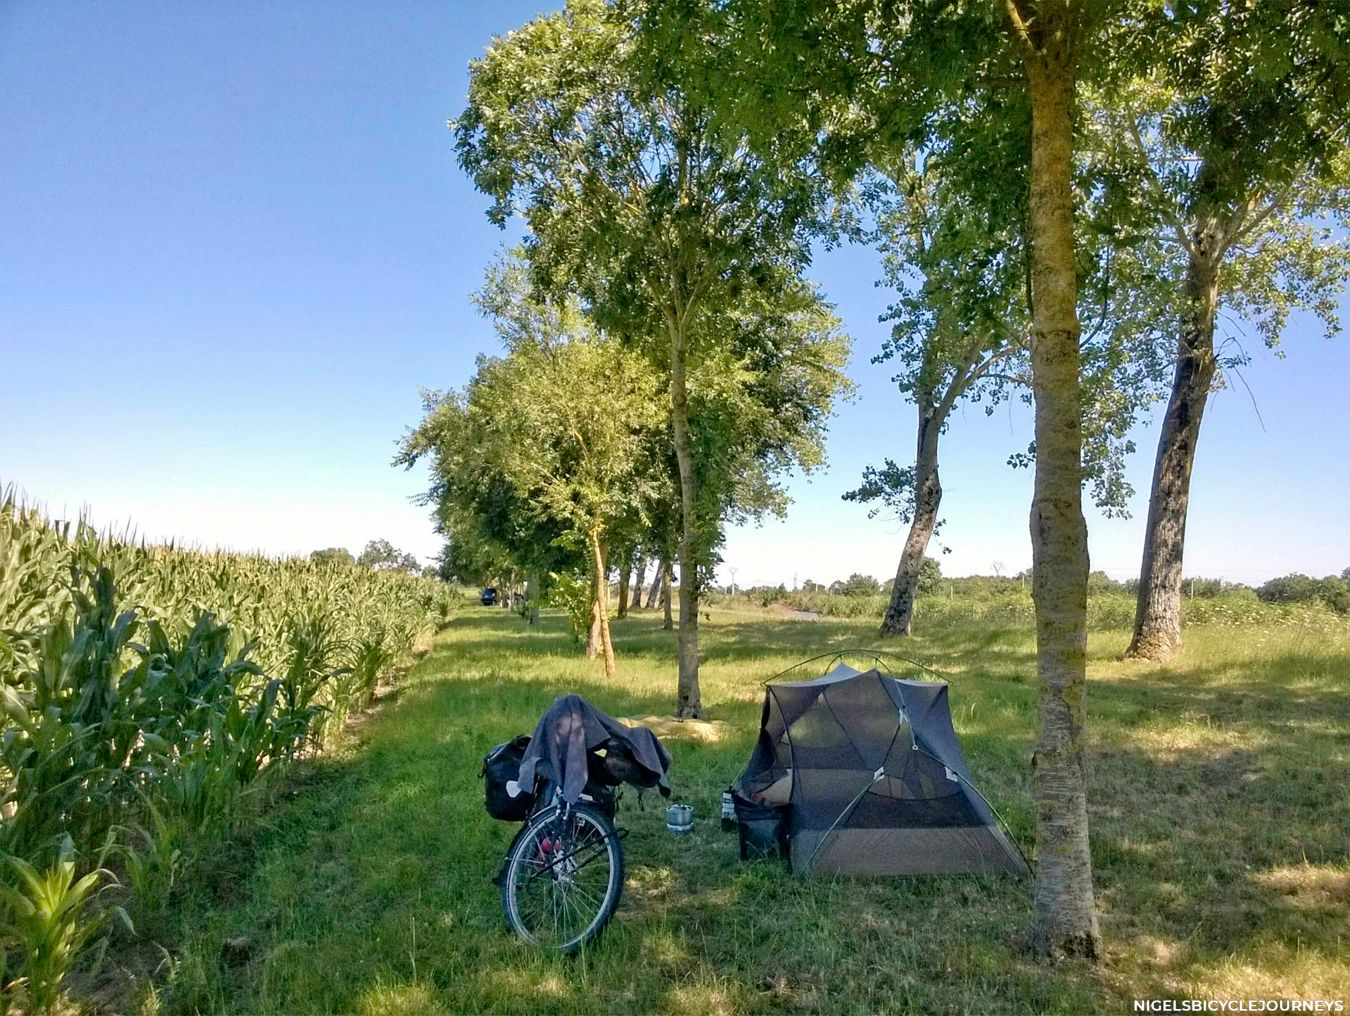 WILD CAMPING 🇫🇷 France - NIGELS BICYCLE JOURNEYS